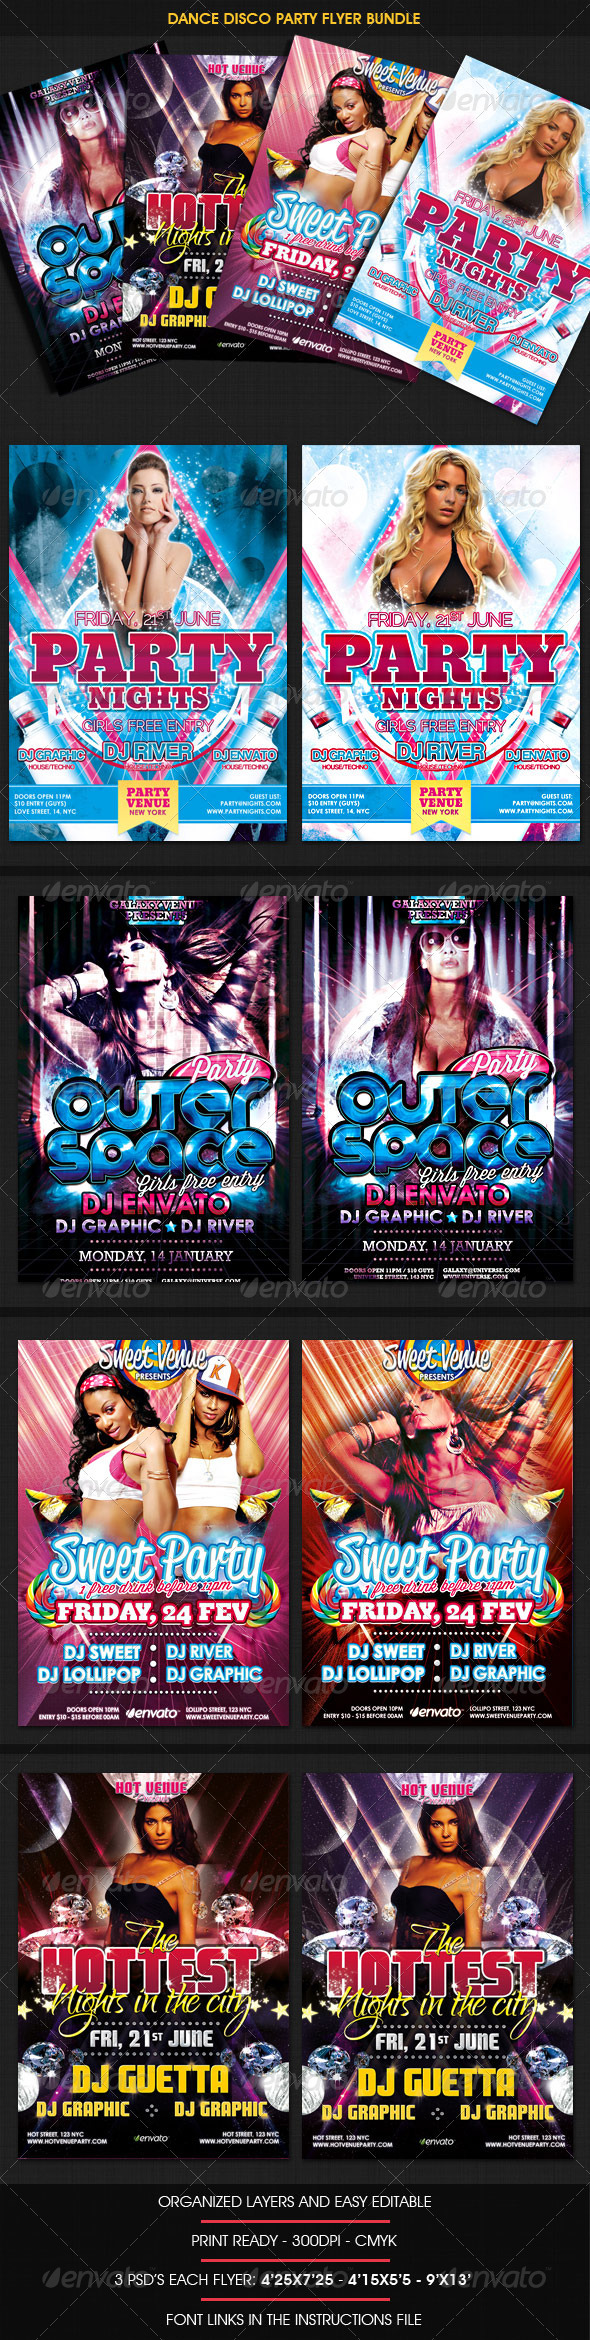 Dance Disco Party Flyer Bundle - Clubs & Parties Events